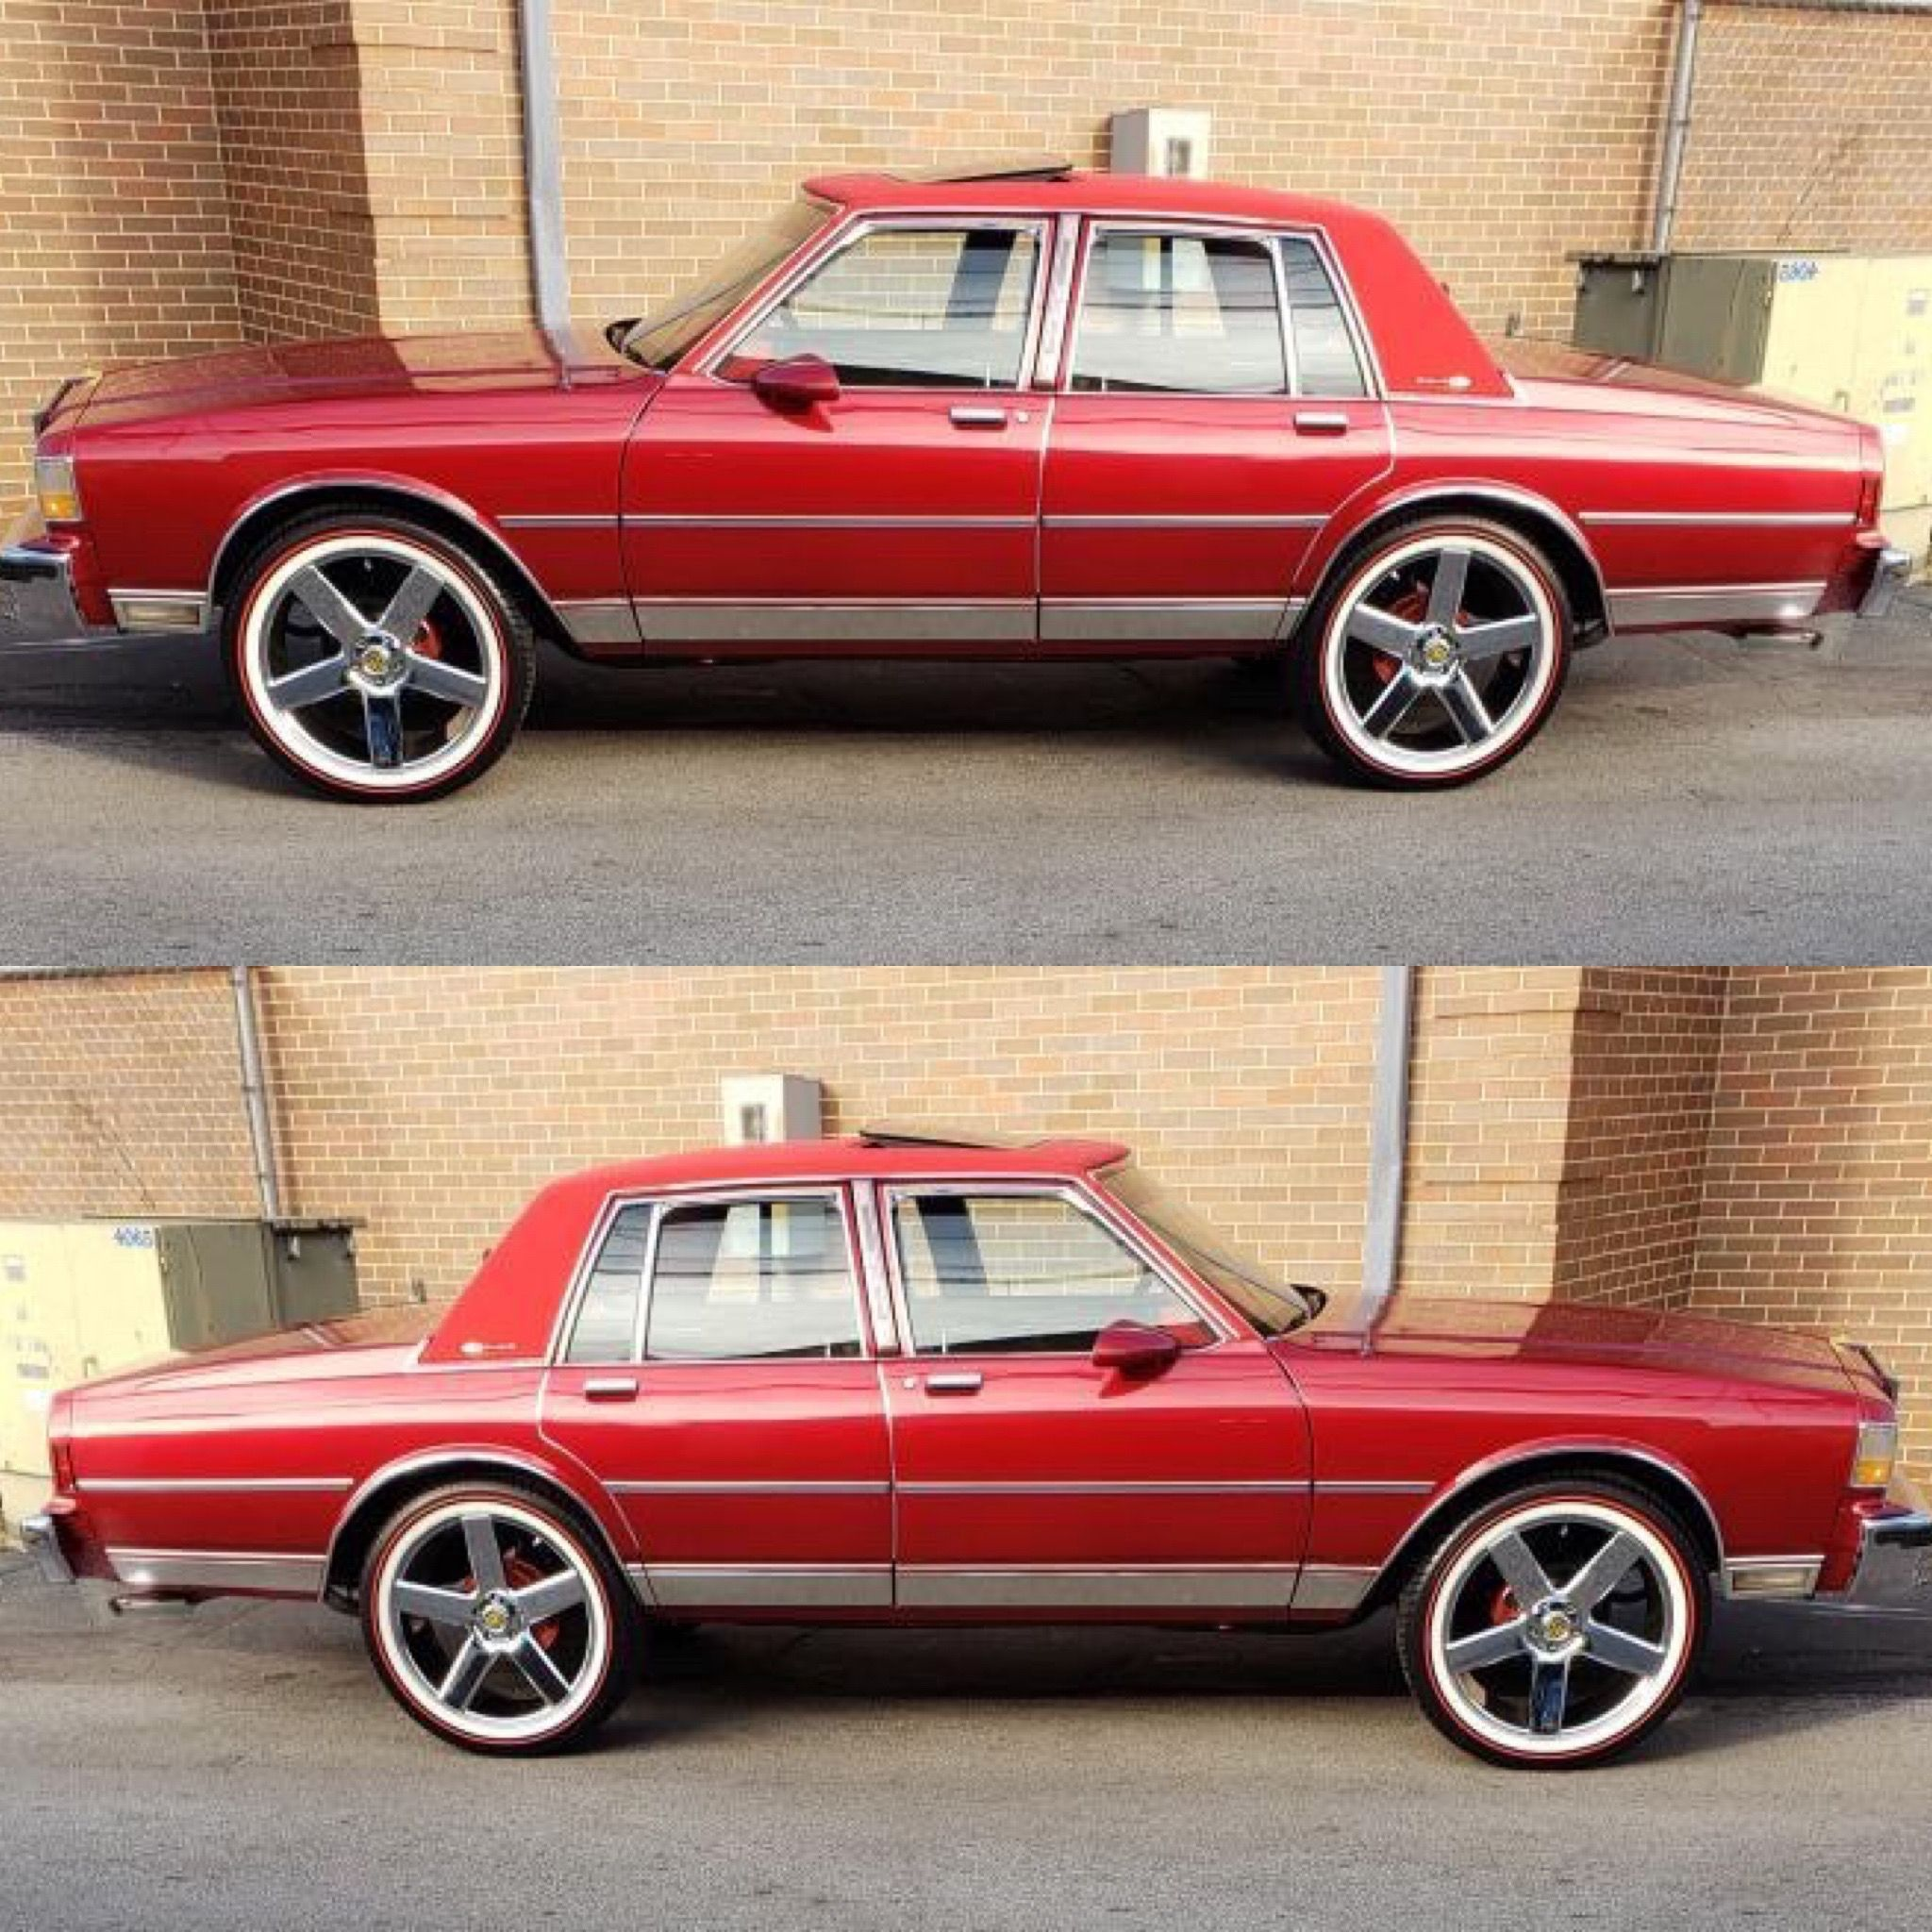 This Chevy is Ready! Check out the new Vogue a RED Stripe 😍 What does everybody think? Comment B